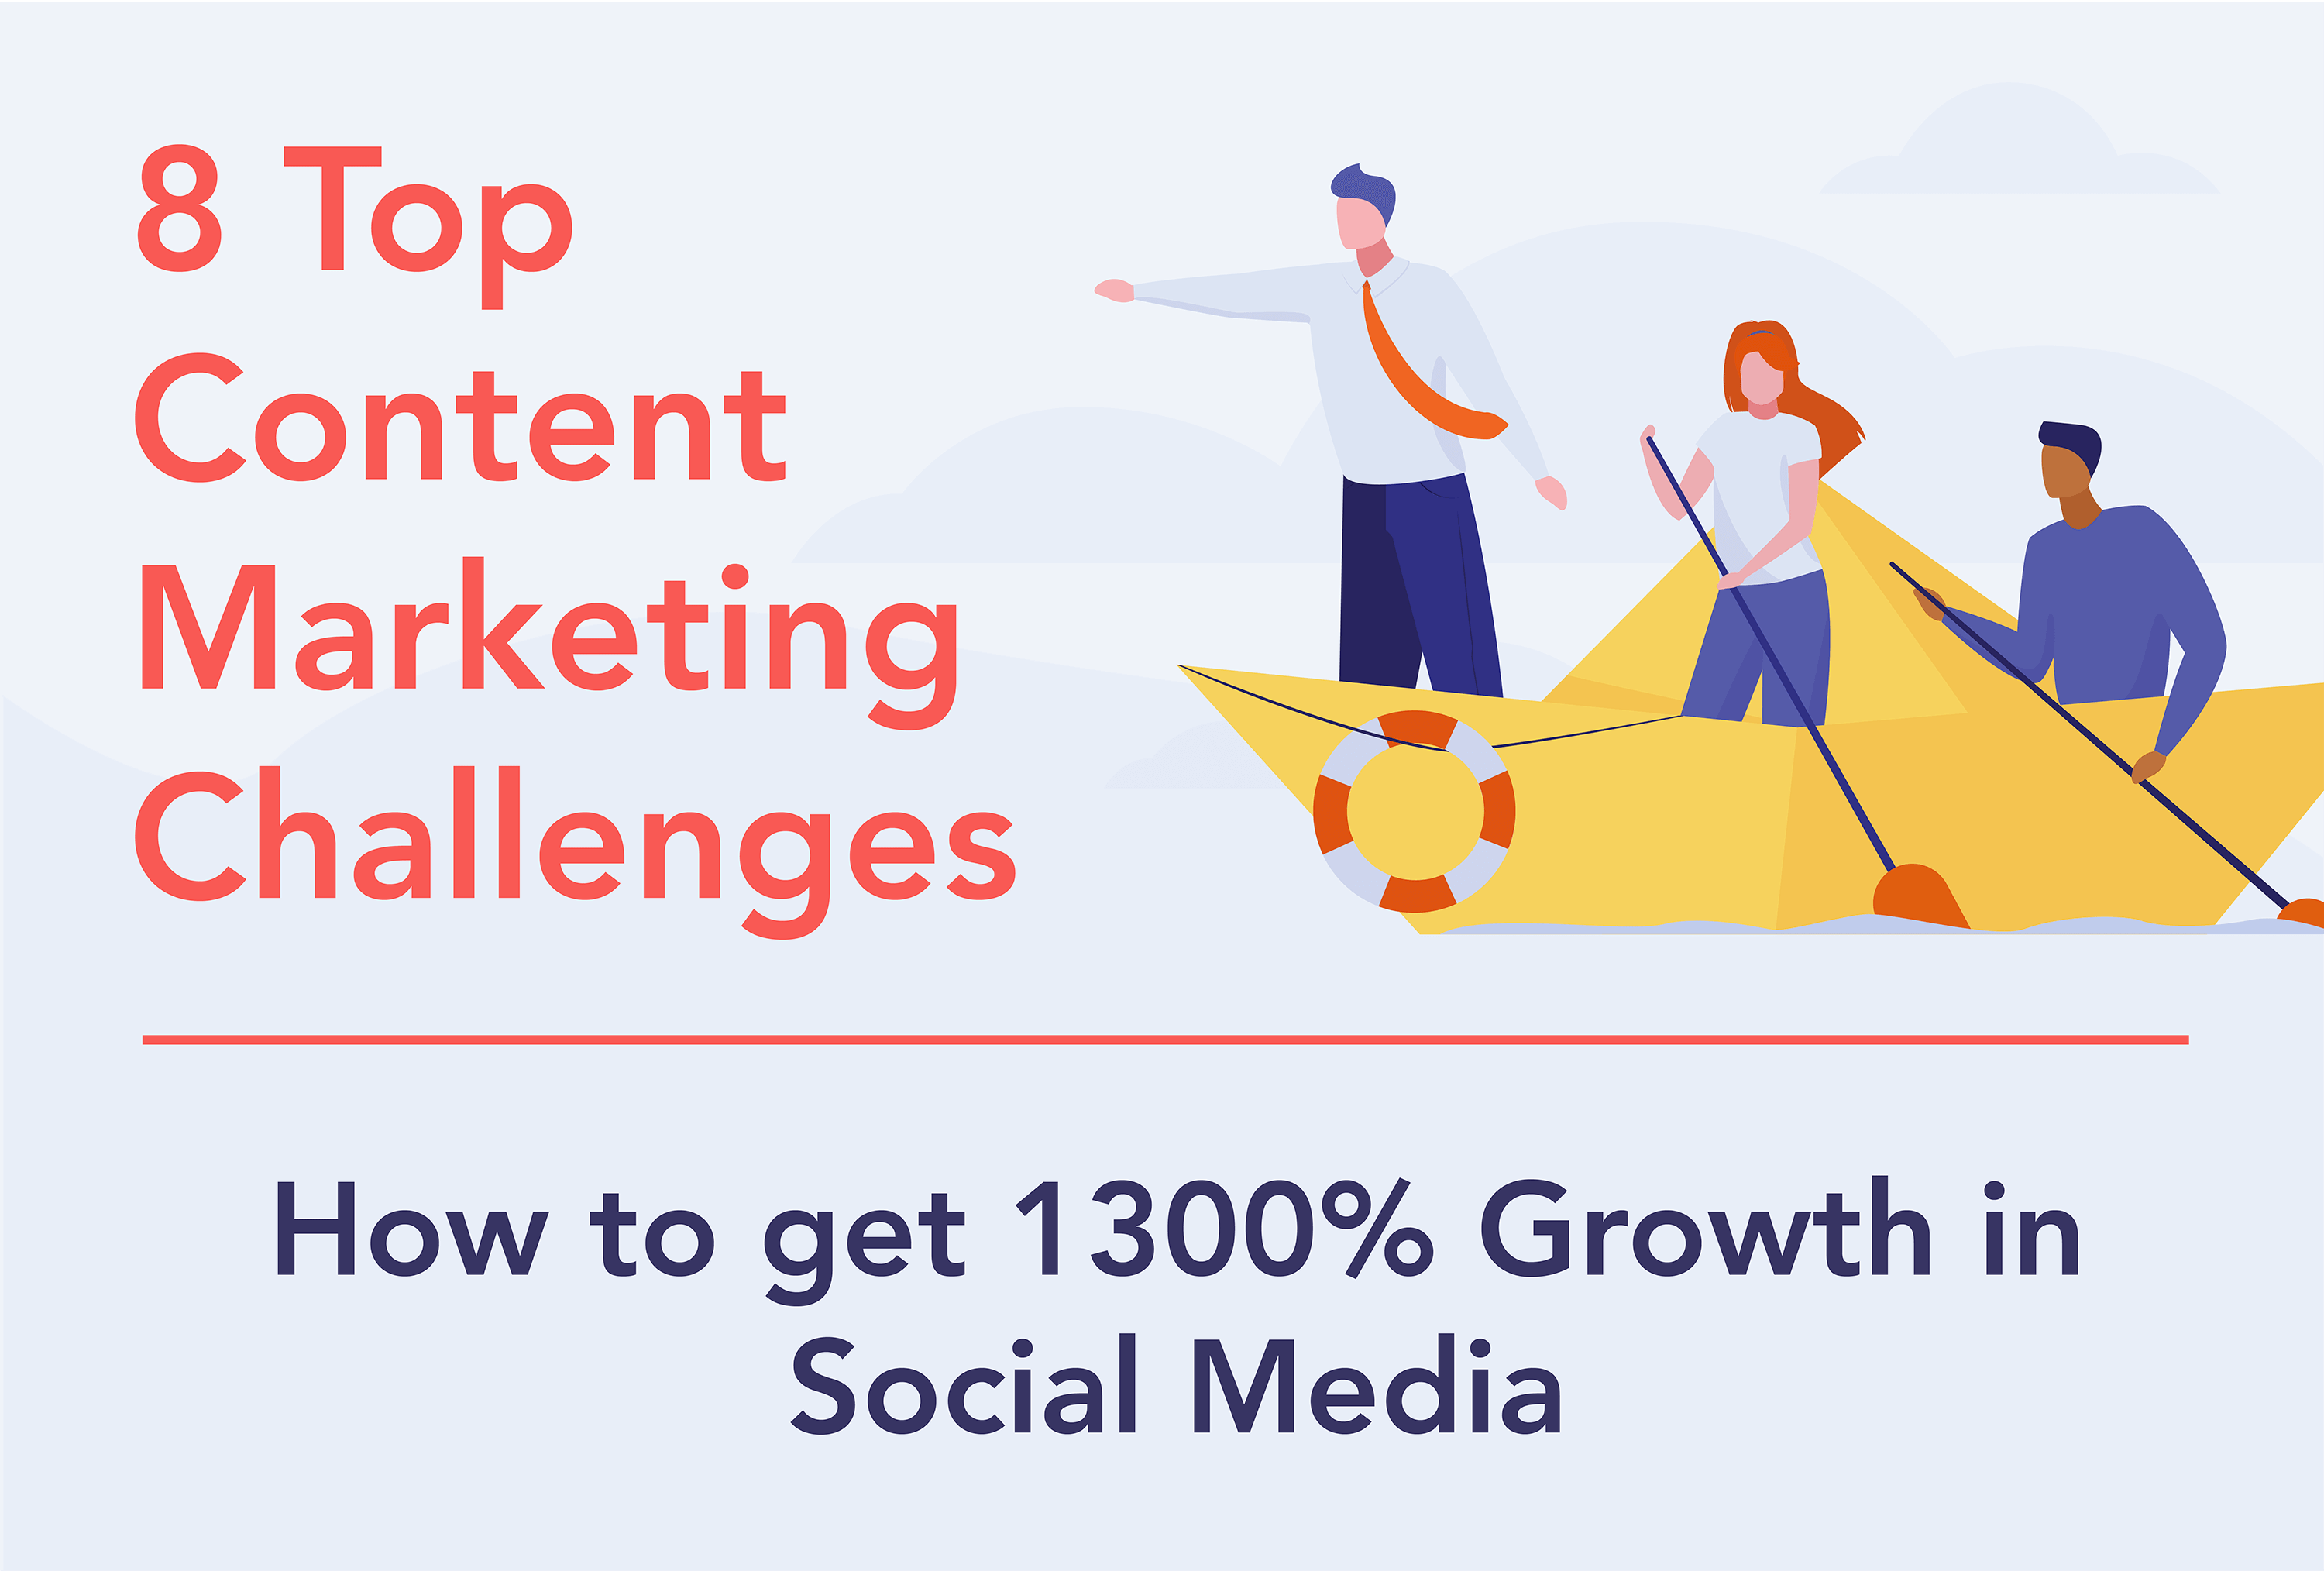 8 Top Content Marketing Challenges (How to get 1300% growth in Social Media)